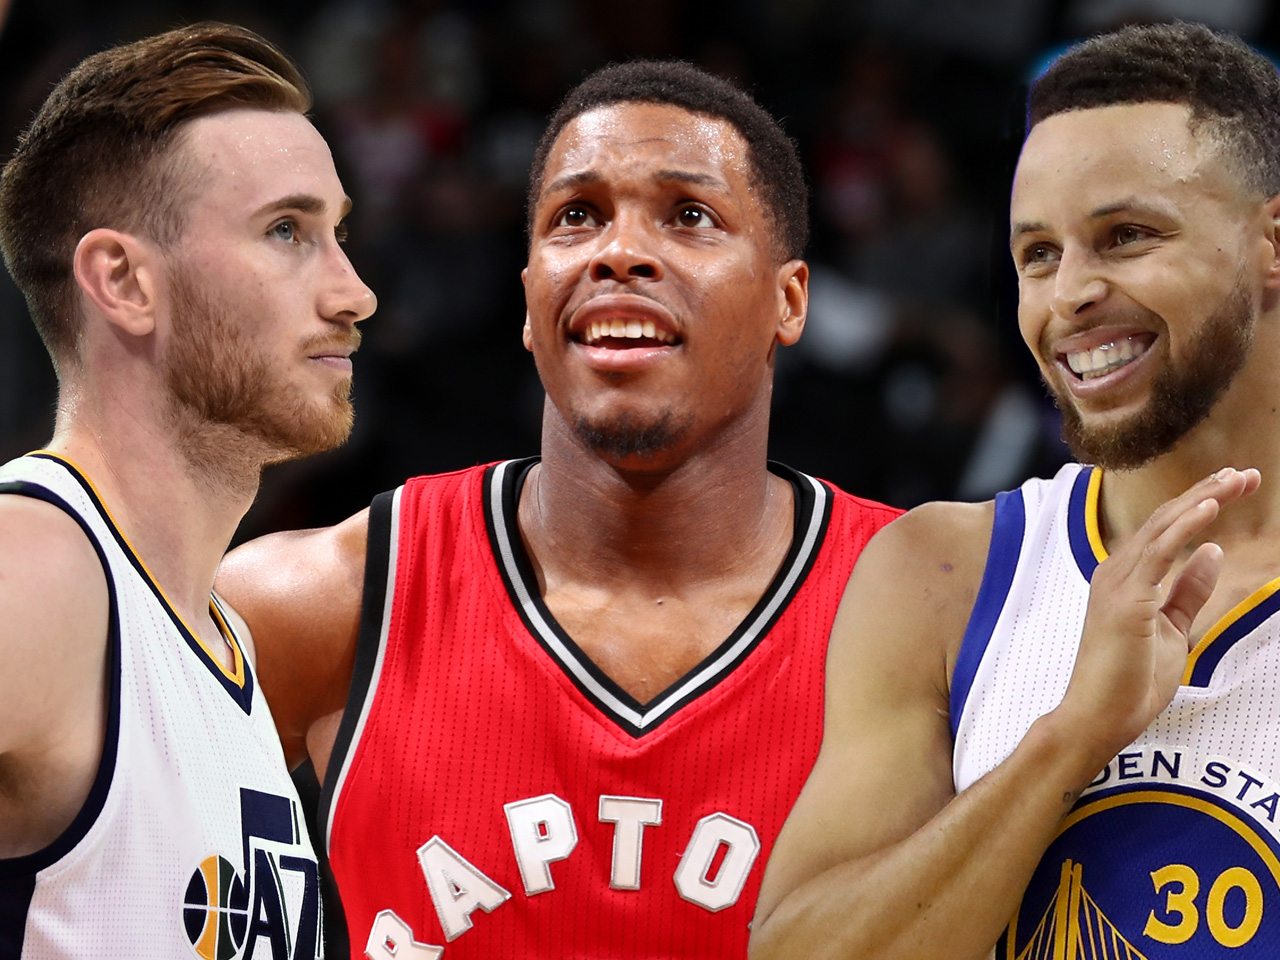 how will free agency nba auto correct affect players 2017